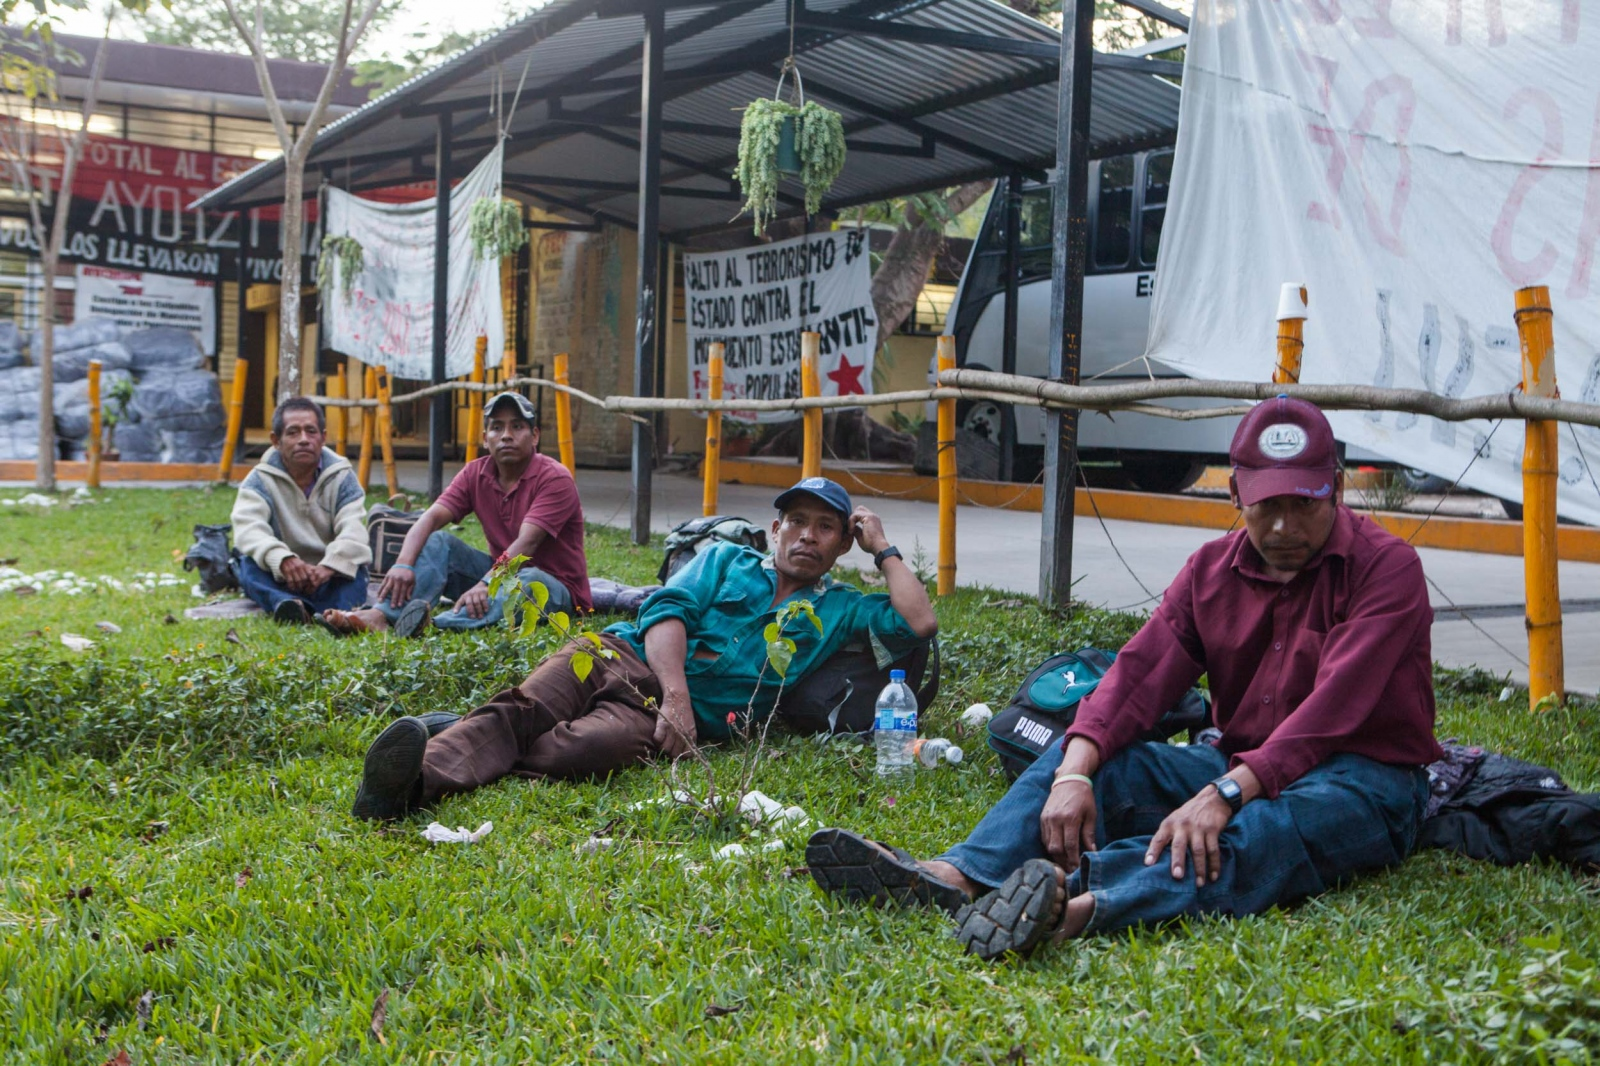 · Farmers of the mountain of Guerror rest for a little while outside of the cafeteria after spending several days campingo out on the school helping out the parents and students.   // · Campesinos de las montañas de Guerrero descansan un momento afuera de la cafetería después de pasar varios días en la escuela, prestando solidaridad a los padres de los alumnos desaparecidos.